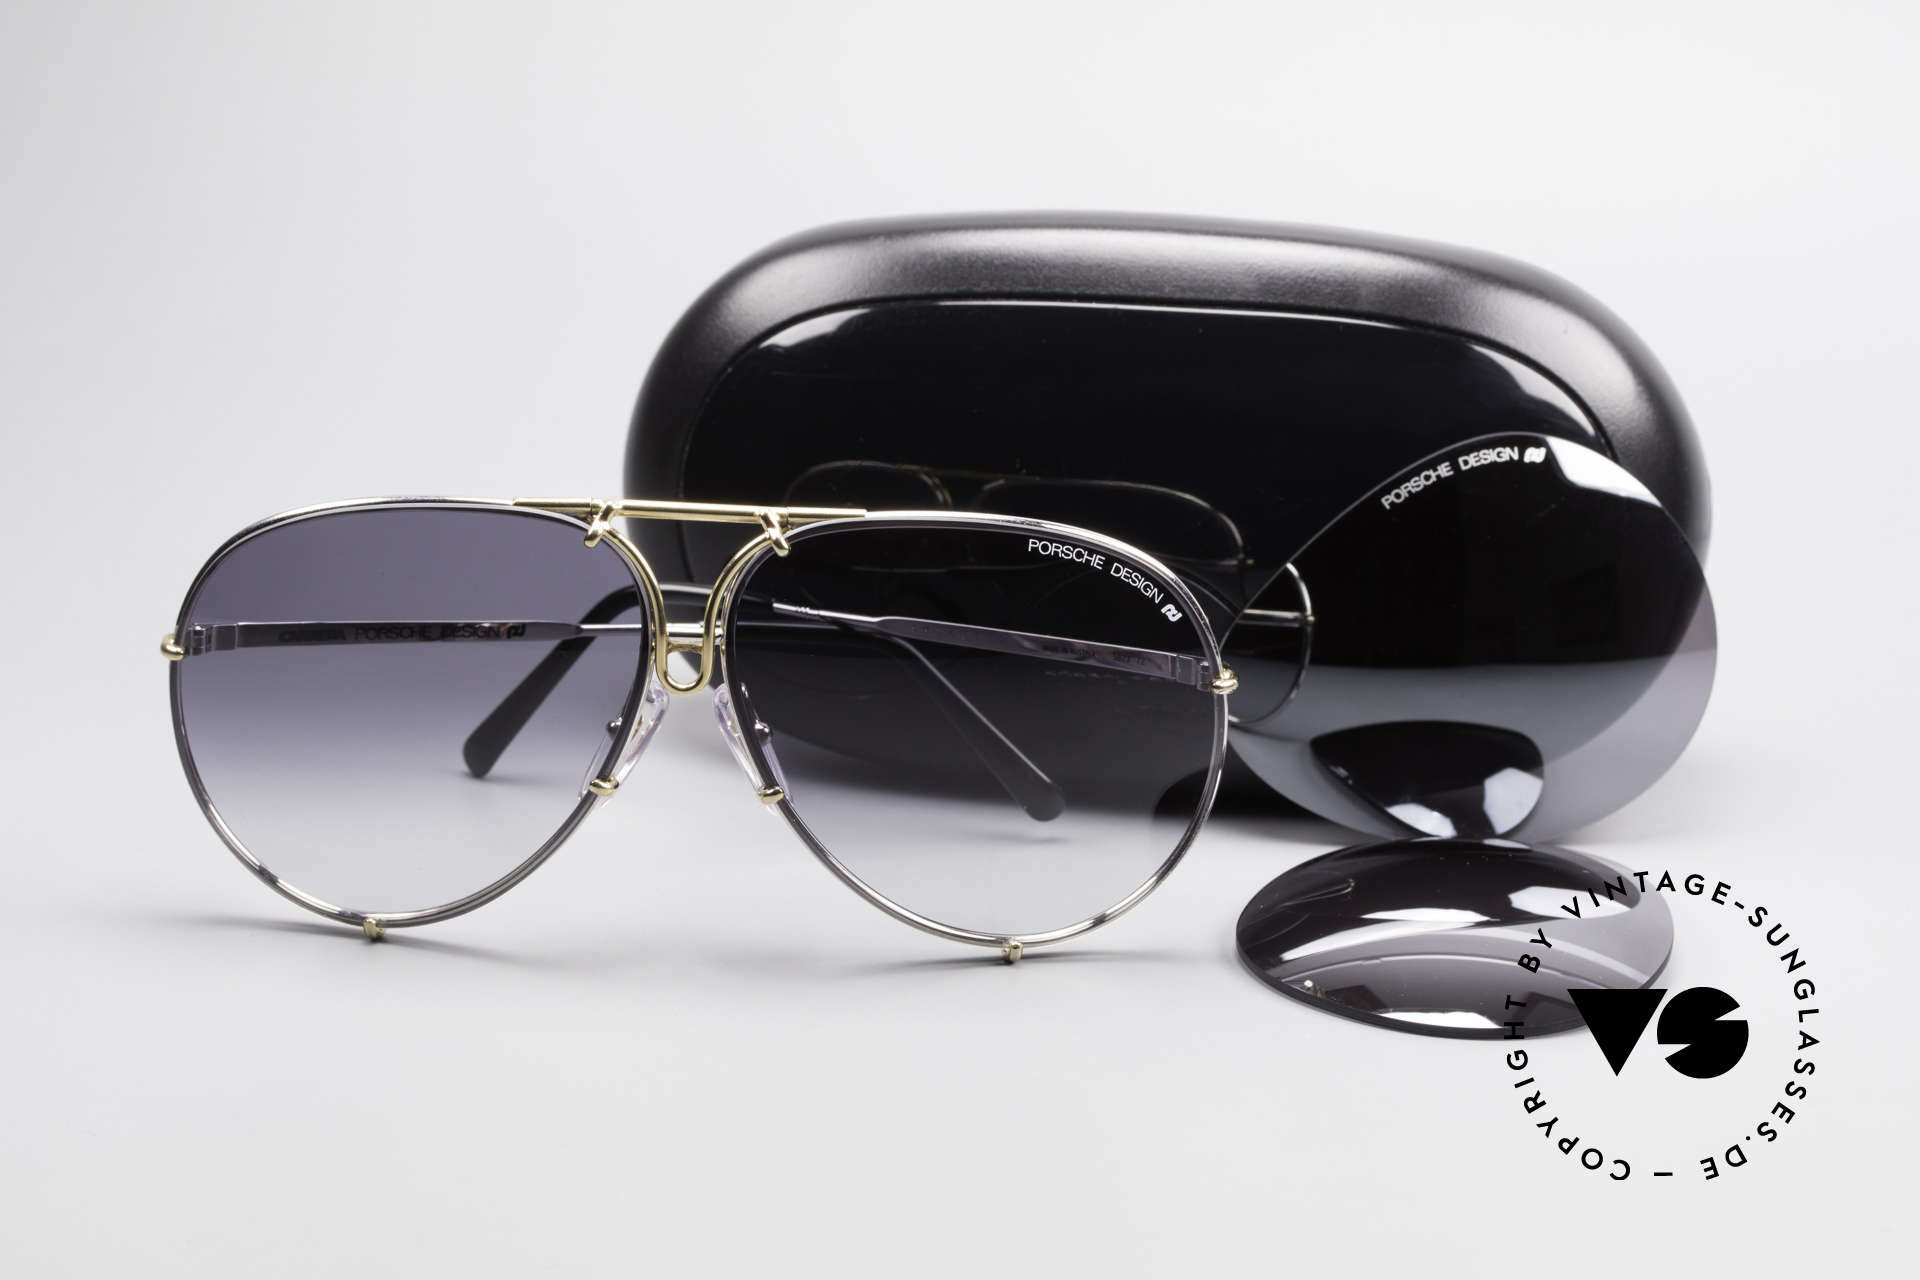 Porsche 5623 Silver Mirrored Sun Lenses, NO RETRO SUNGLASSES, but a 30 years old original, Made for Men and Women